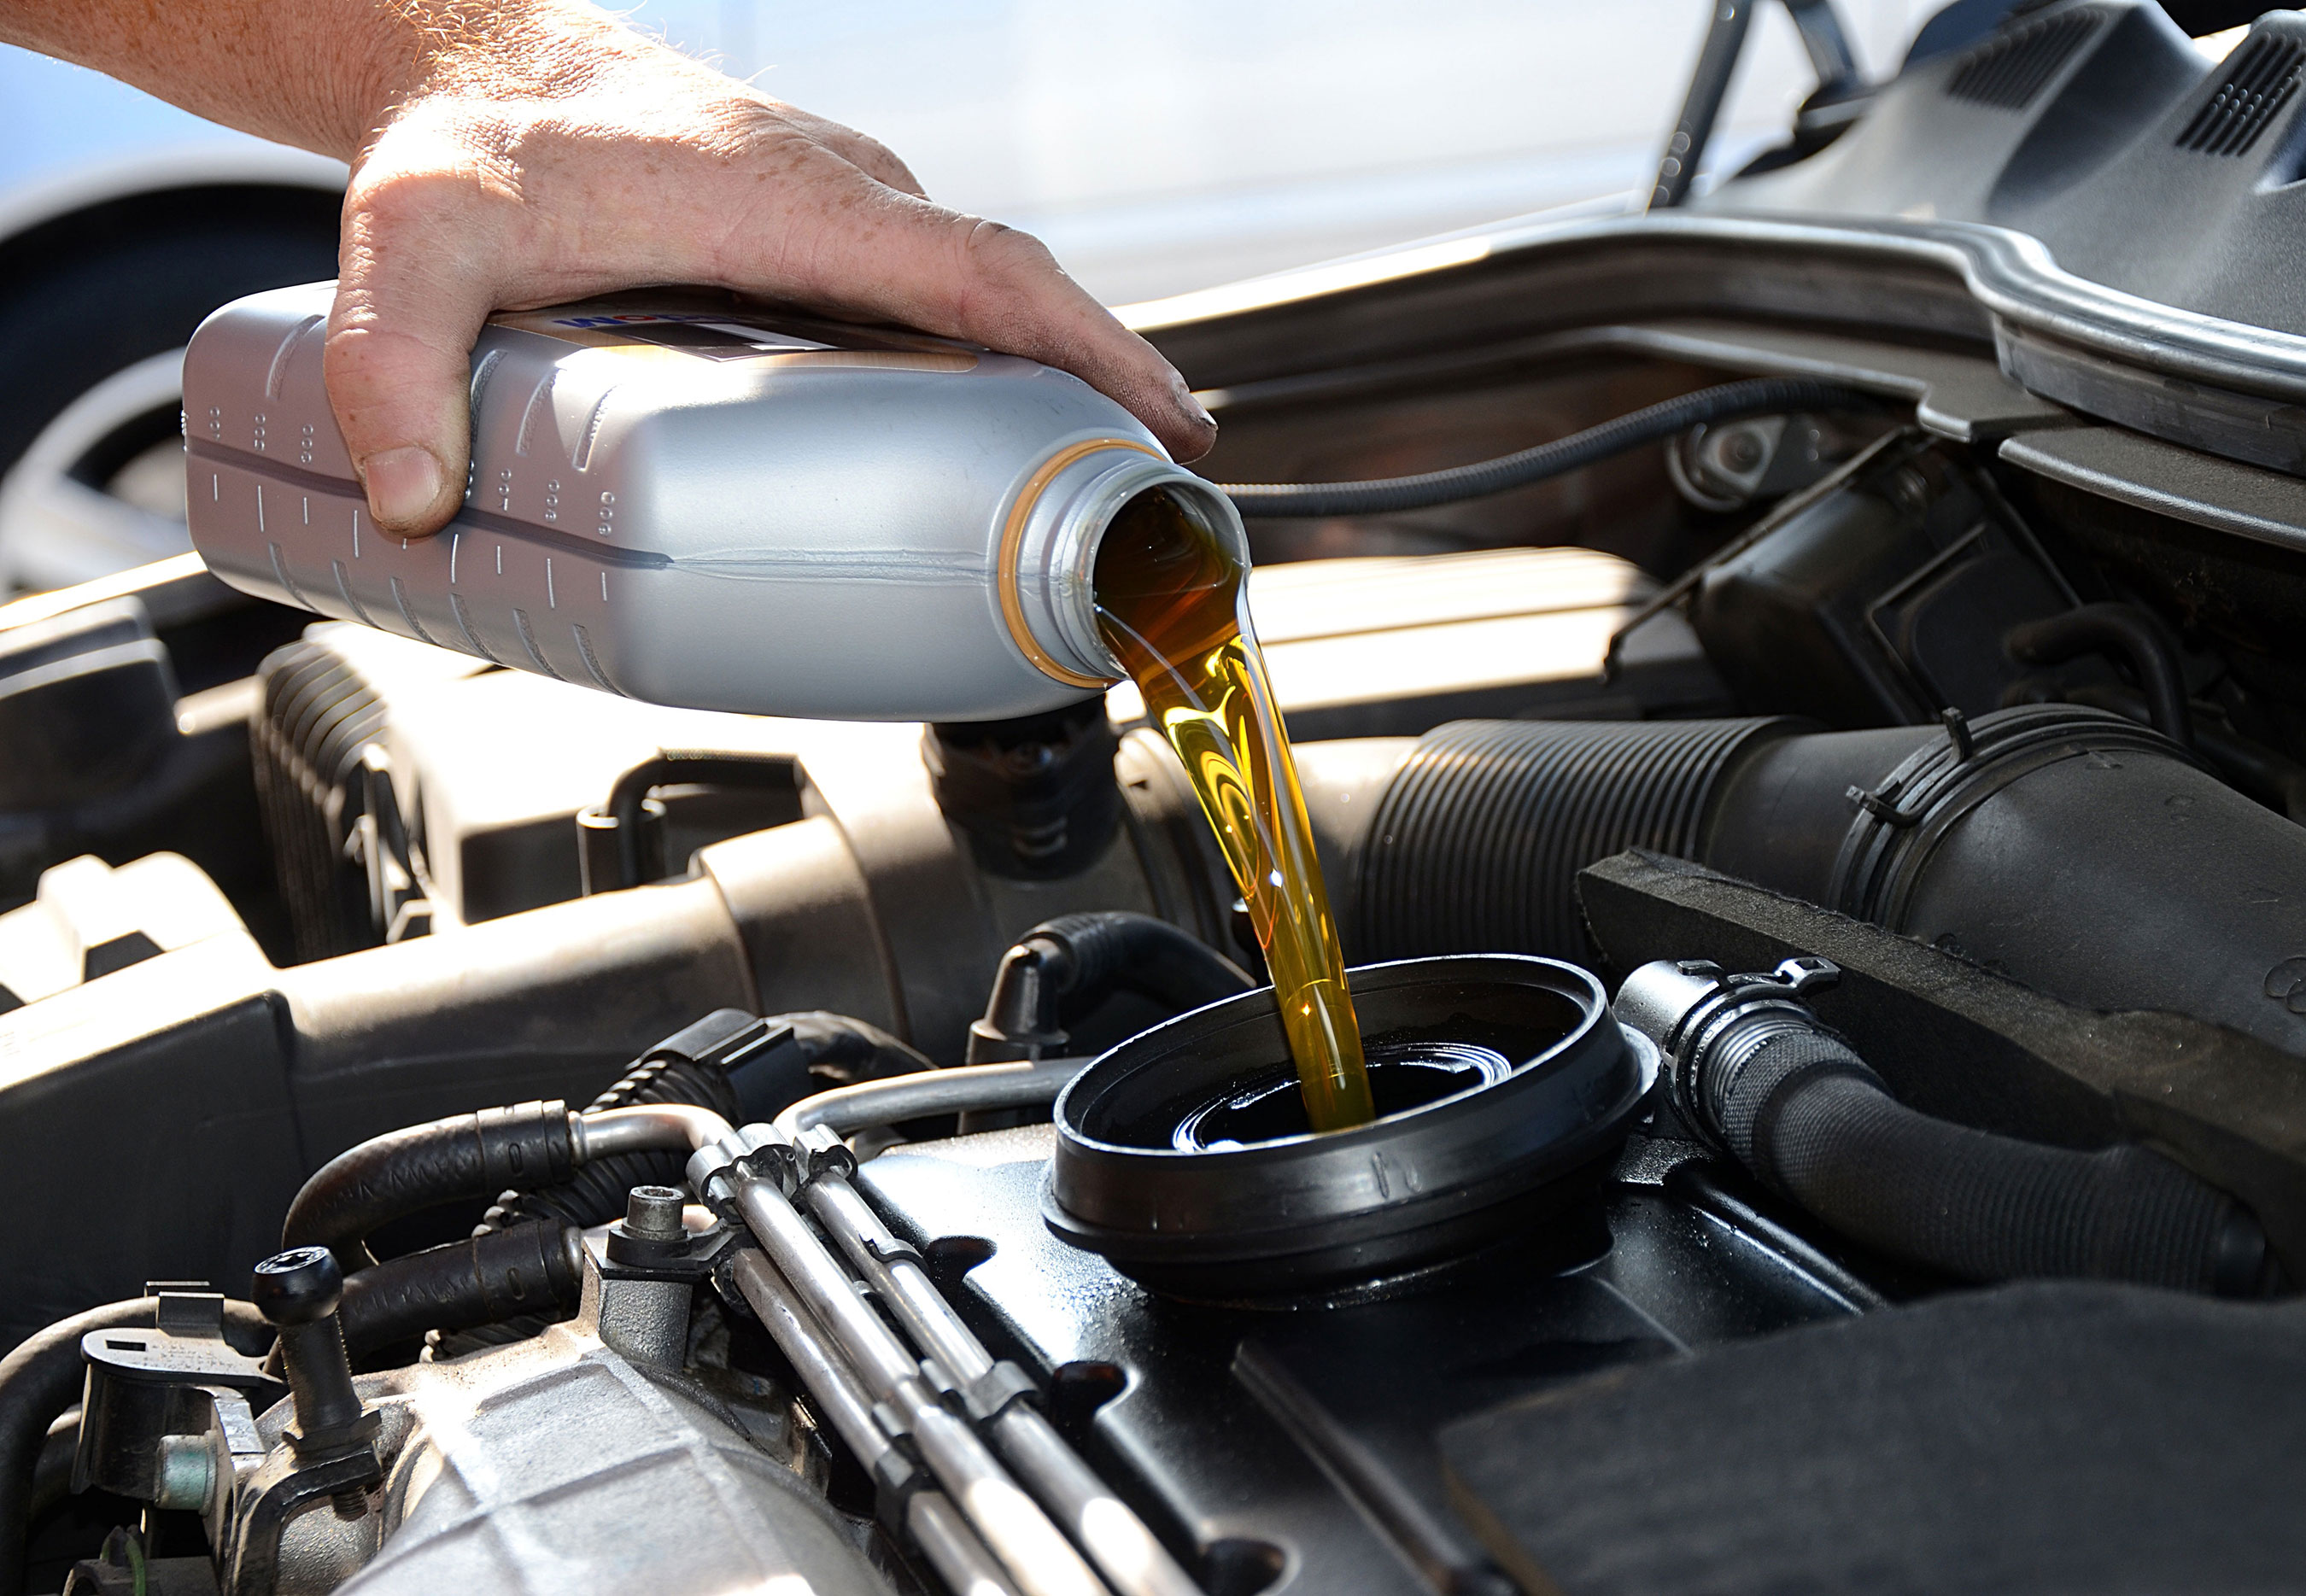 It's Not Too Early to Get Your Car Ready for Winter